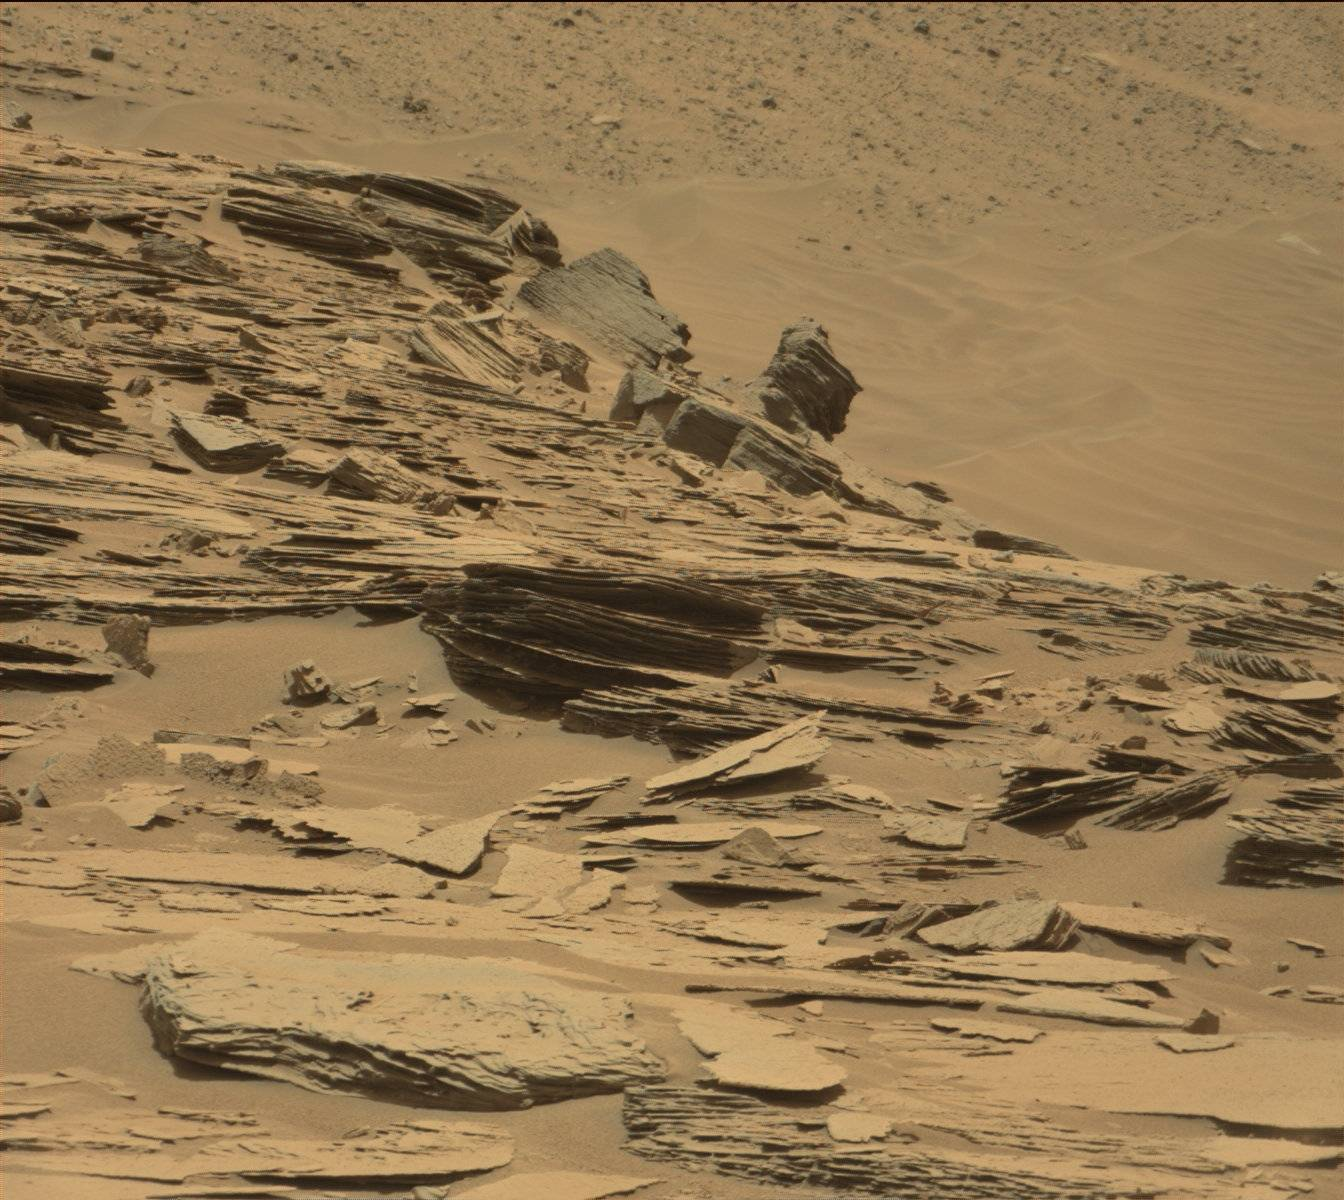 NASA images reveal 'The Ankh Cross' on the surface of Mars 0748MR0032220440403567E01_DXXX